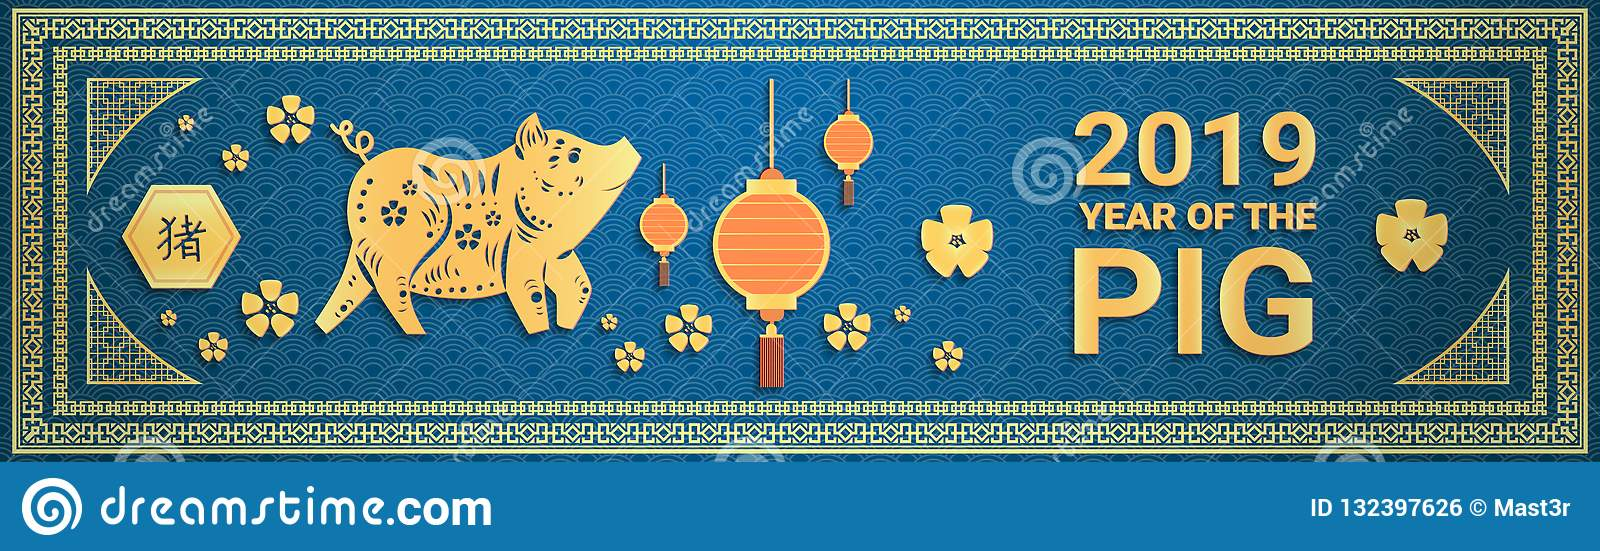 Happy chinese new year 2019 golden pig zodiac sign in traditional frame holiday celebration greeting card horizontal